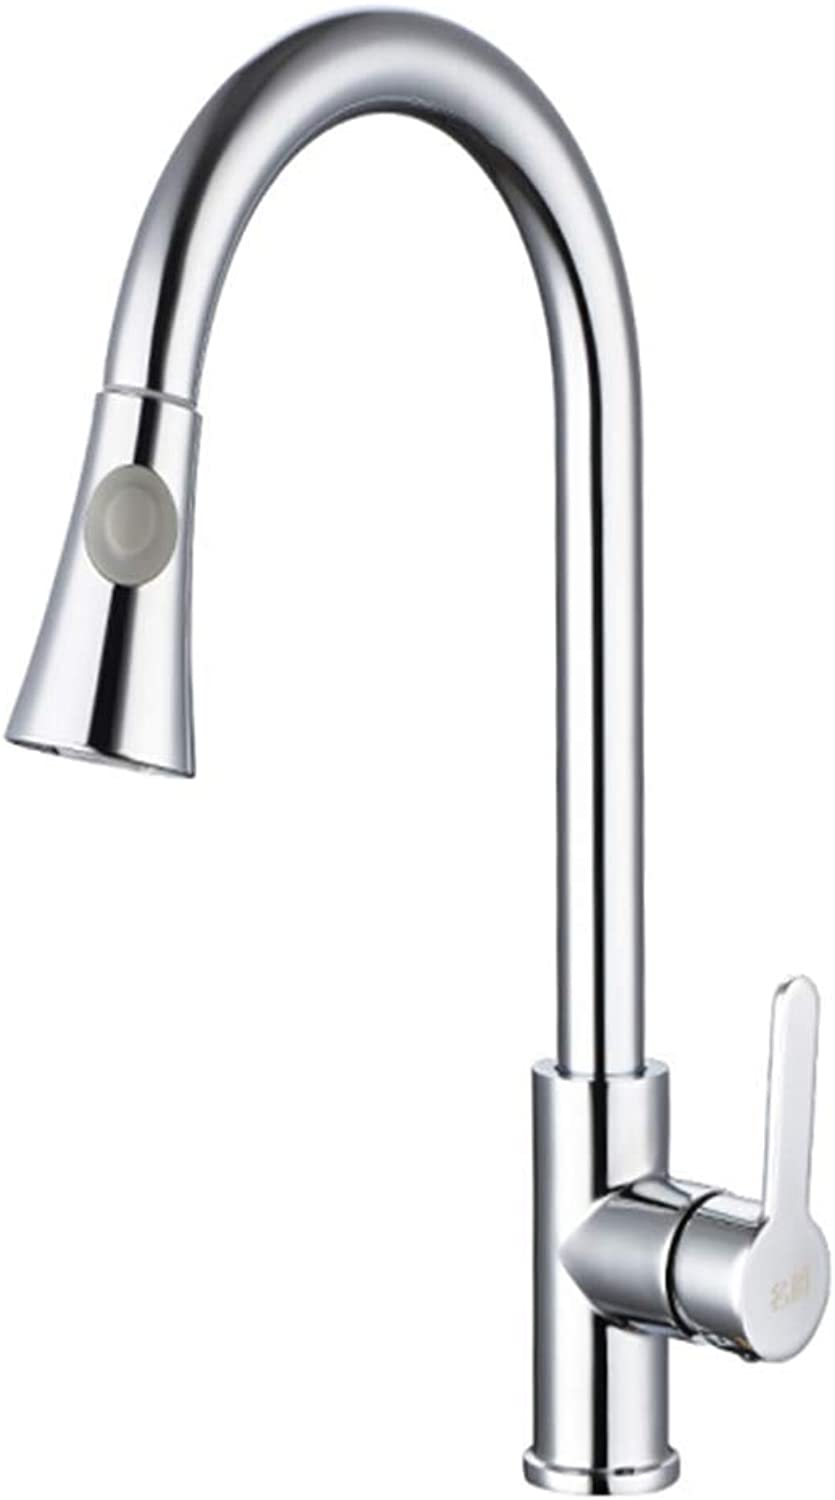 Kitchen Taps Faucet Modern Kitchen Sink Taps Stainless Steelcopper Main Faucet Cold and Hot Dishwash Basin Sink Pull Faucet